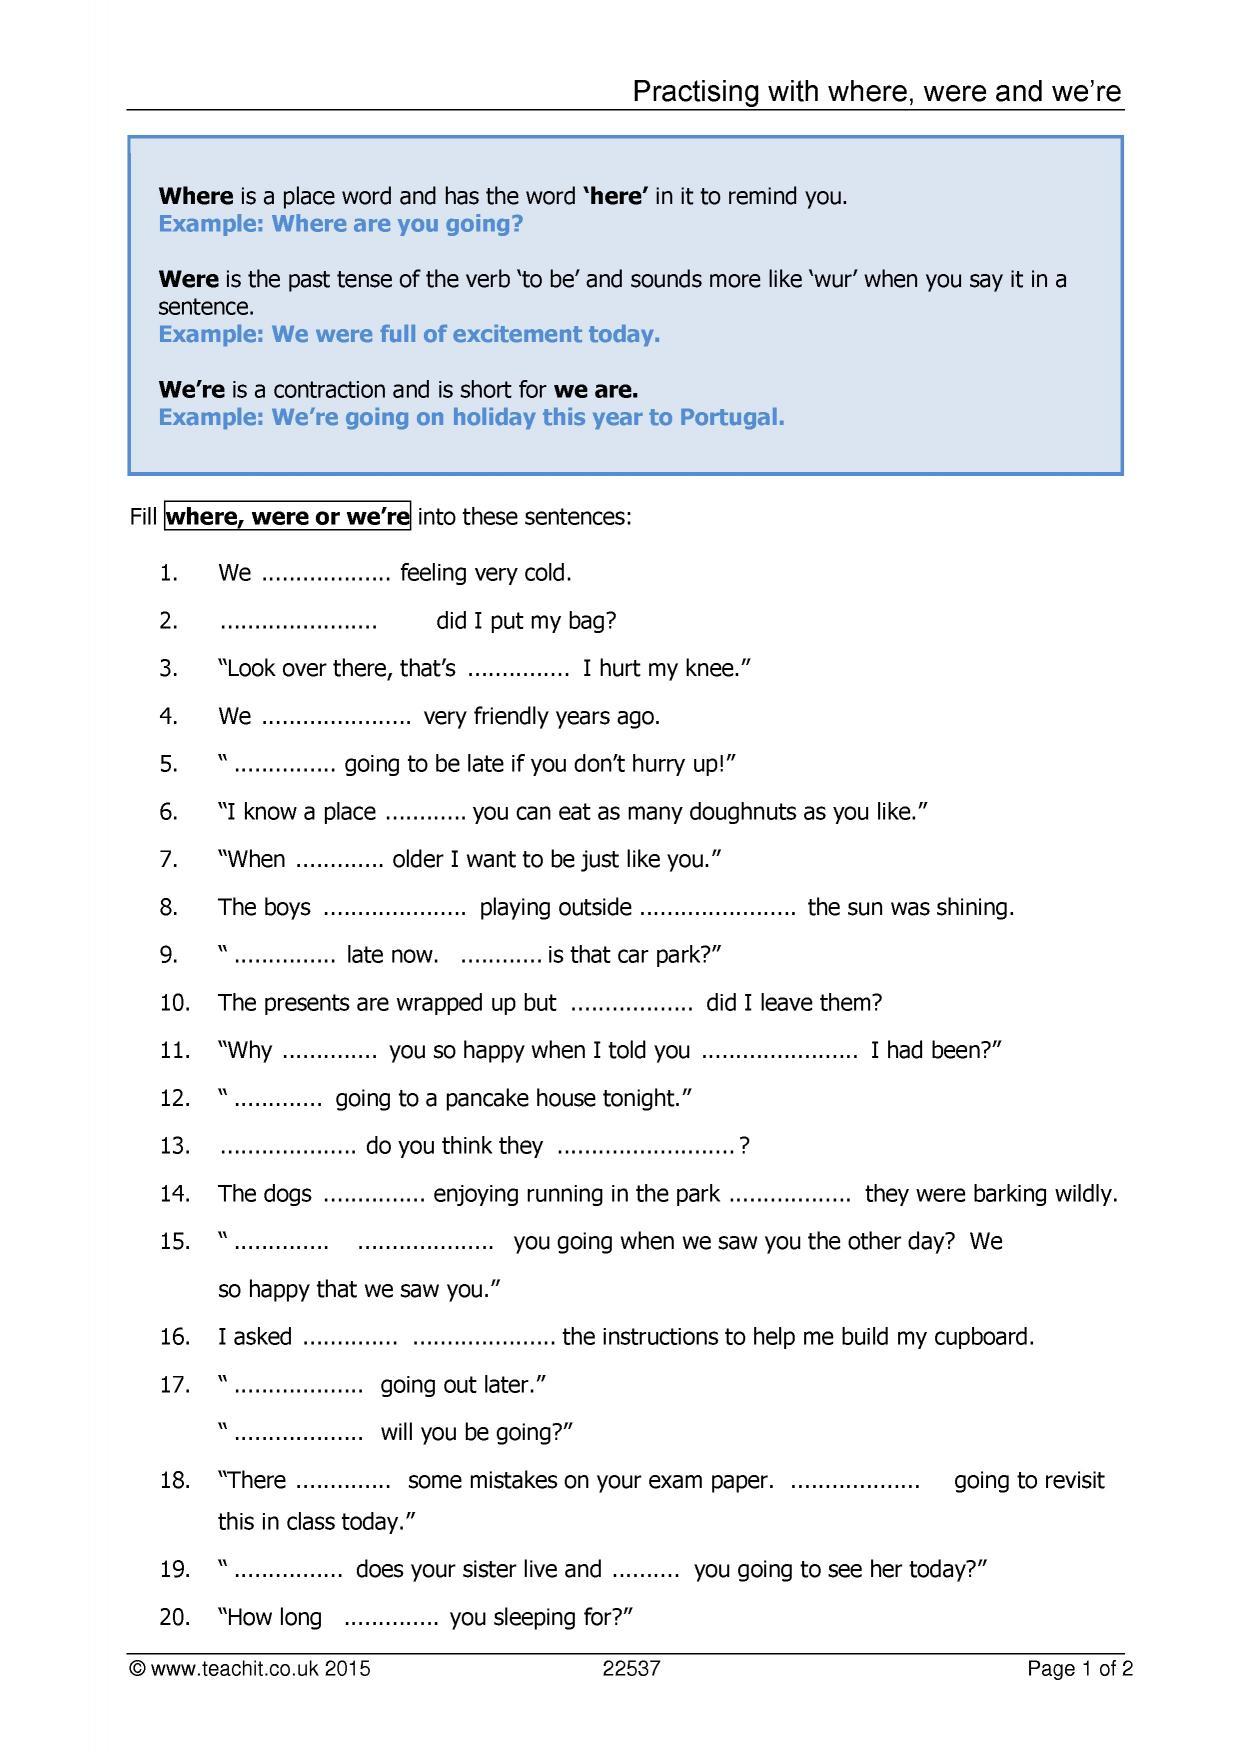 Subject verb agreement worksheets sample free download - Subject Verb Agreement Worksheets Uk College Articles Yourdictionary Sentence Construction Ks3 Grammar And Vocabulary Key Stage